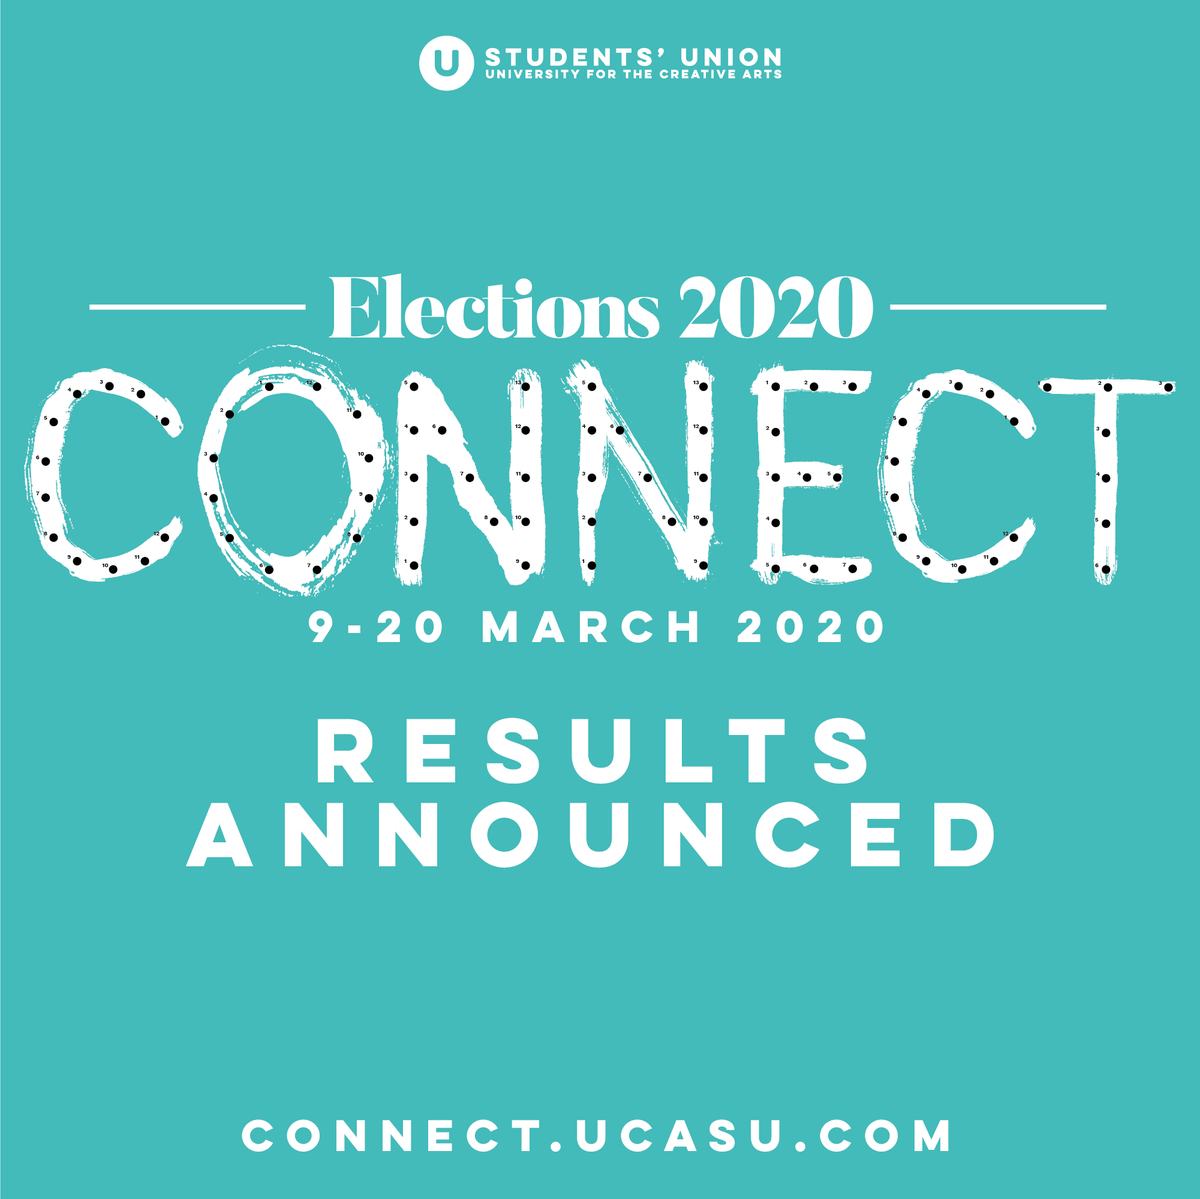 test Twitter Media - MARCH ELECTION RESULTS 2020 The candidates have campaigned long and hard and we're proud to announce the results of our annual election on our website. https://t.co/sdKlDGNSQK #ucasuelections2020 https://t.co/ITrPy56tkn